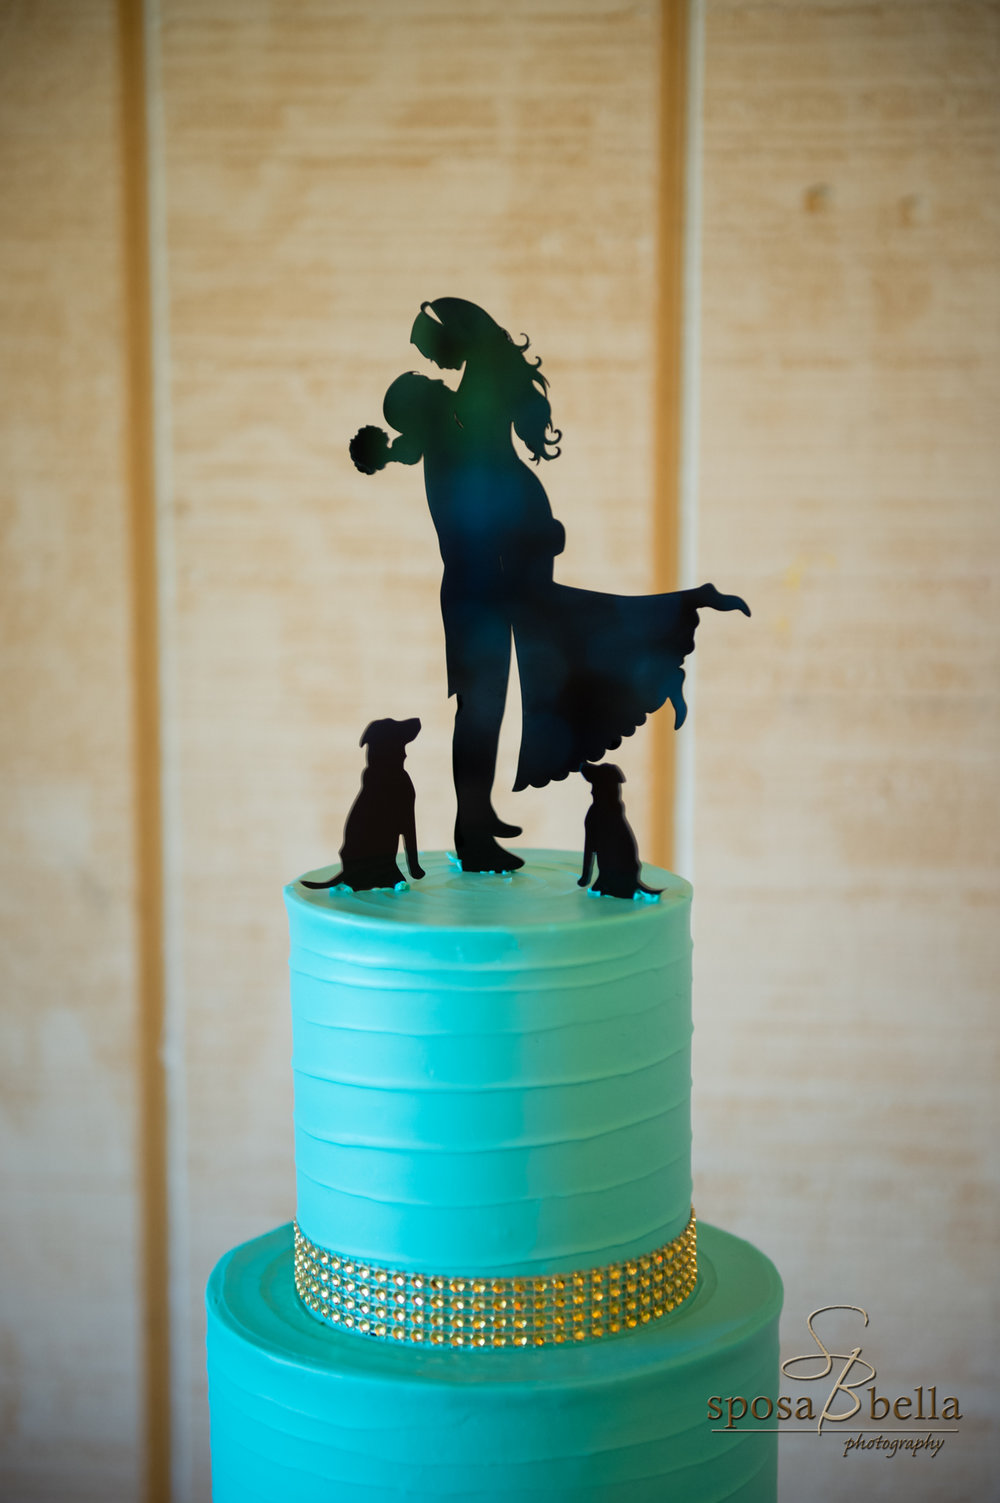 A customized cake topper is a great way to incorporate your furbaby into th day when they are not able to be there personally.